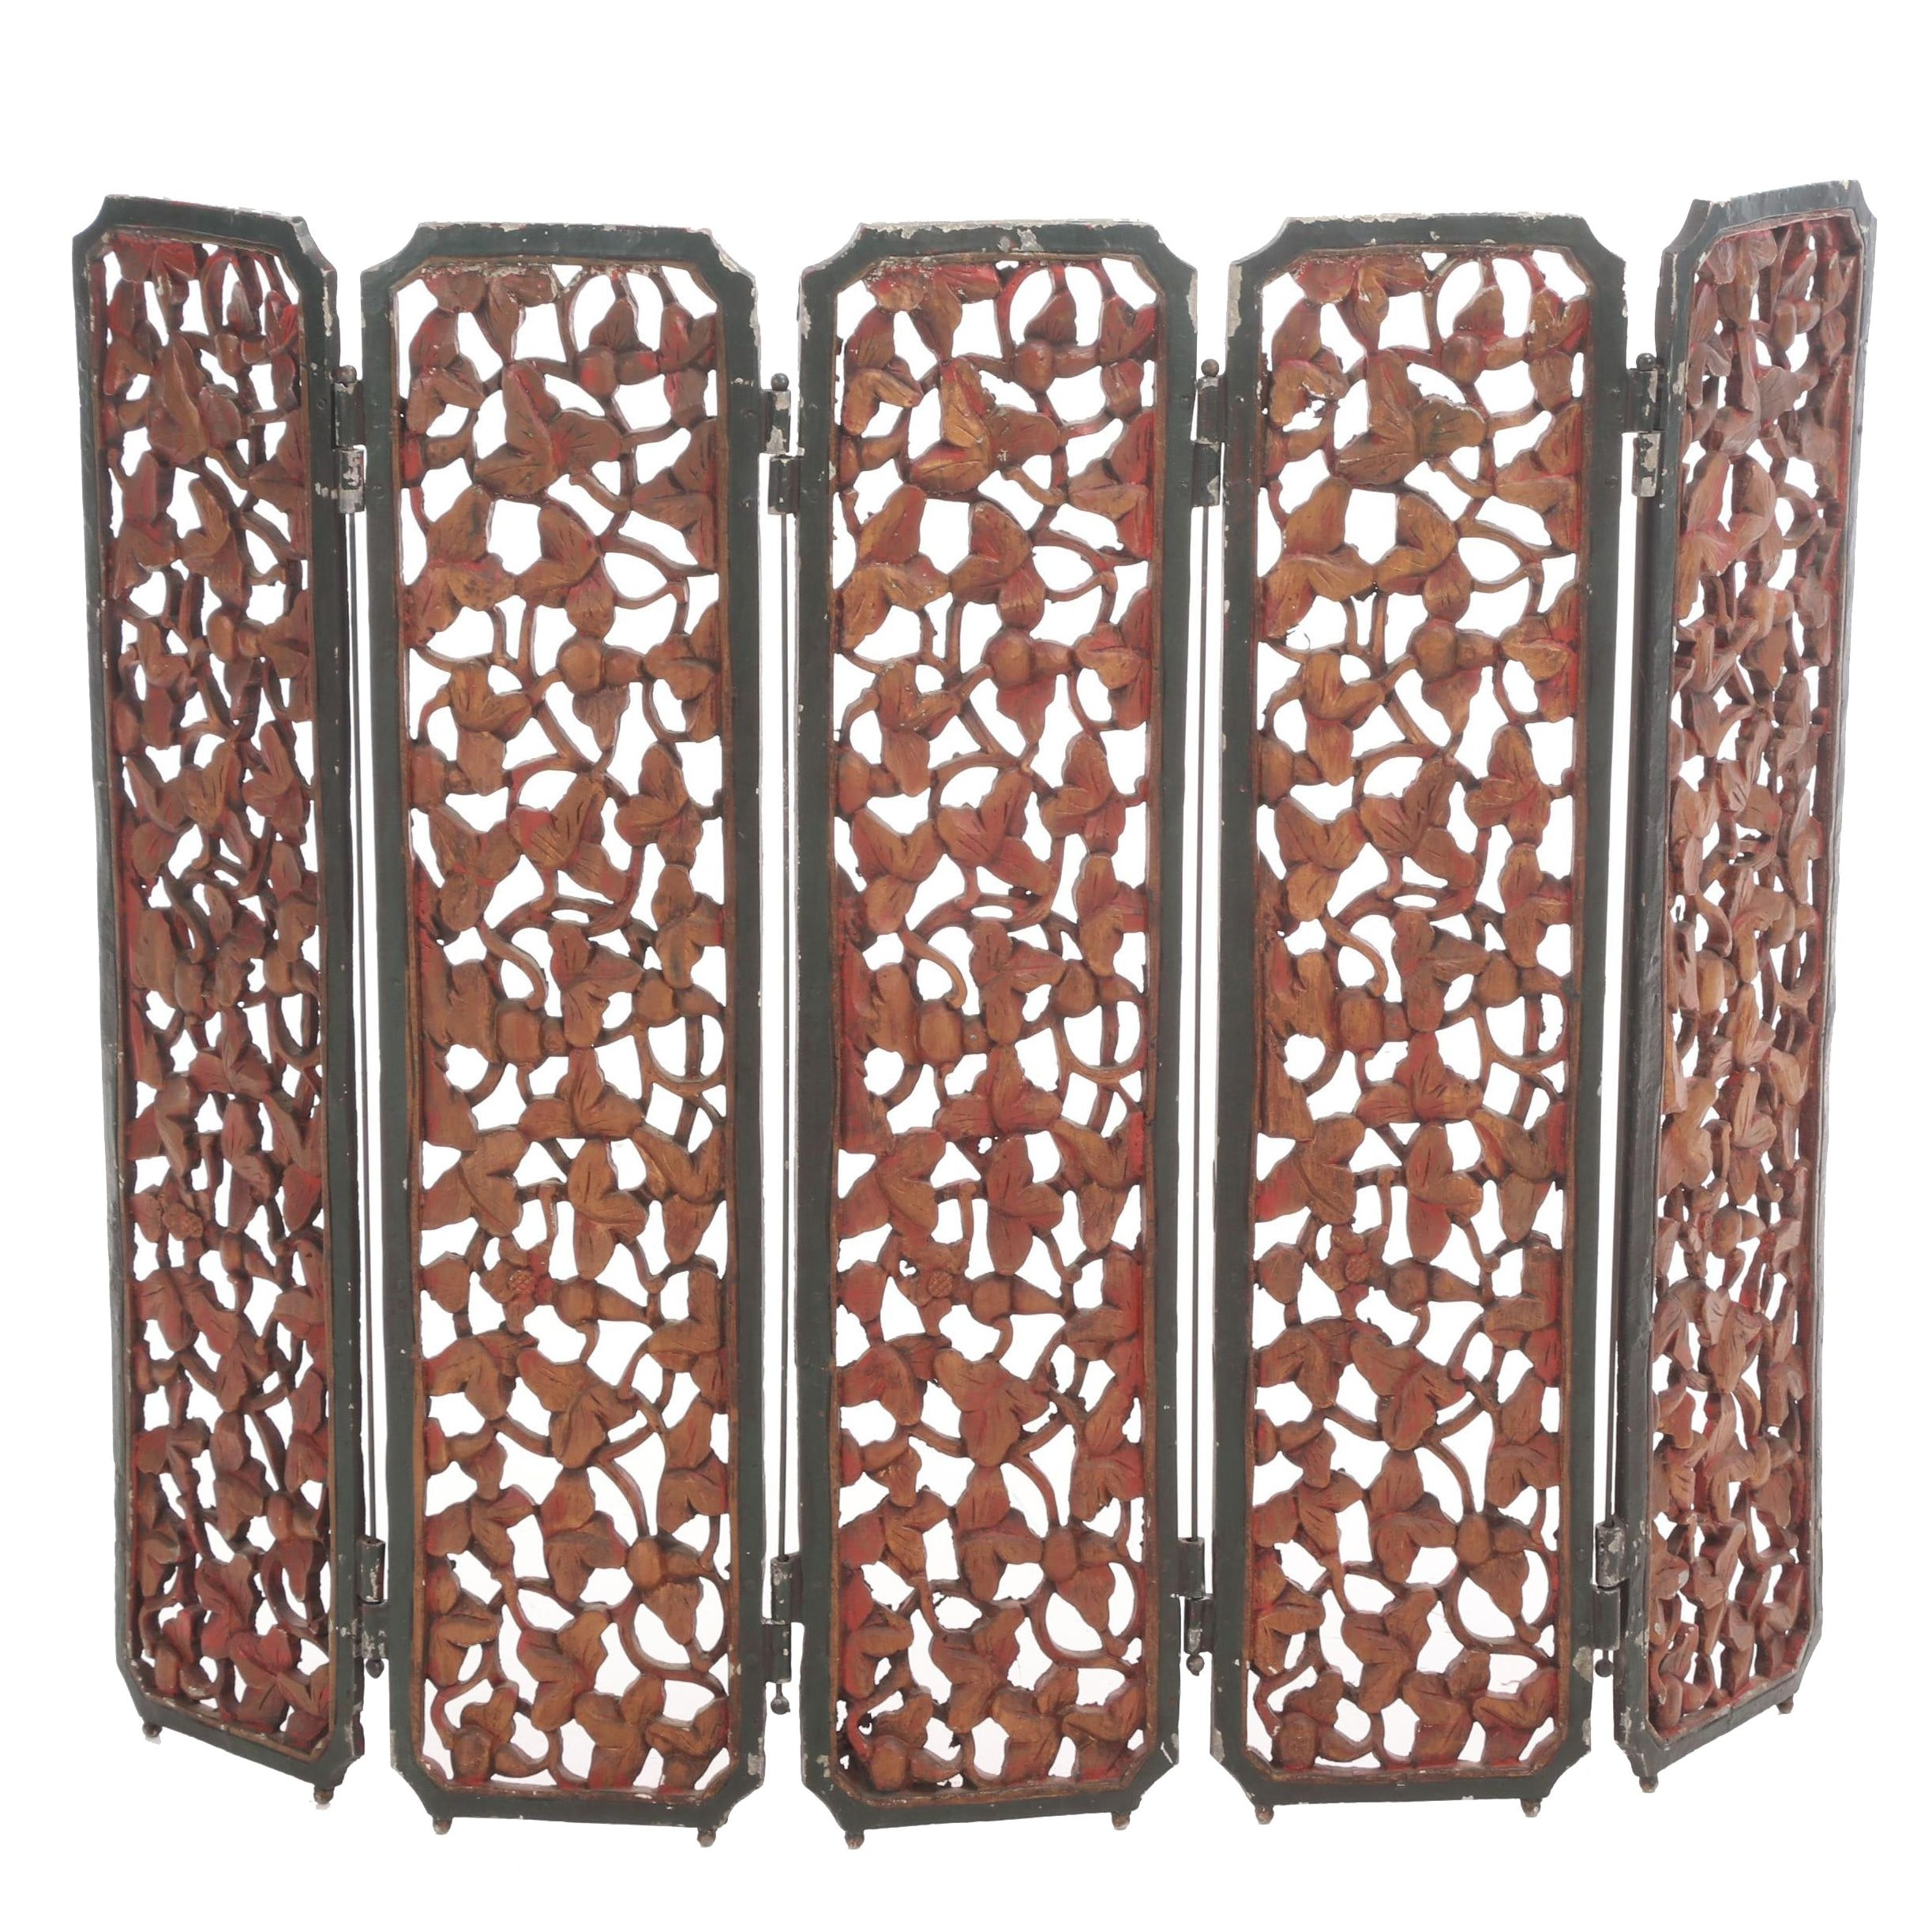 Metal Painted Fireplace Screen with Ivy Motif, Late 19th to Early 20th Century